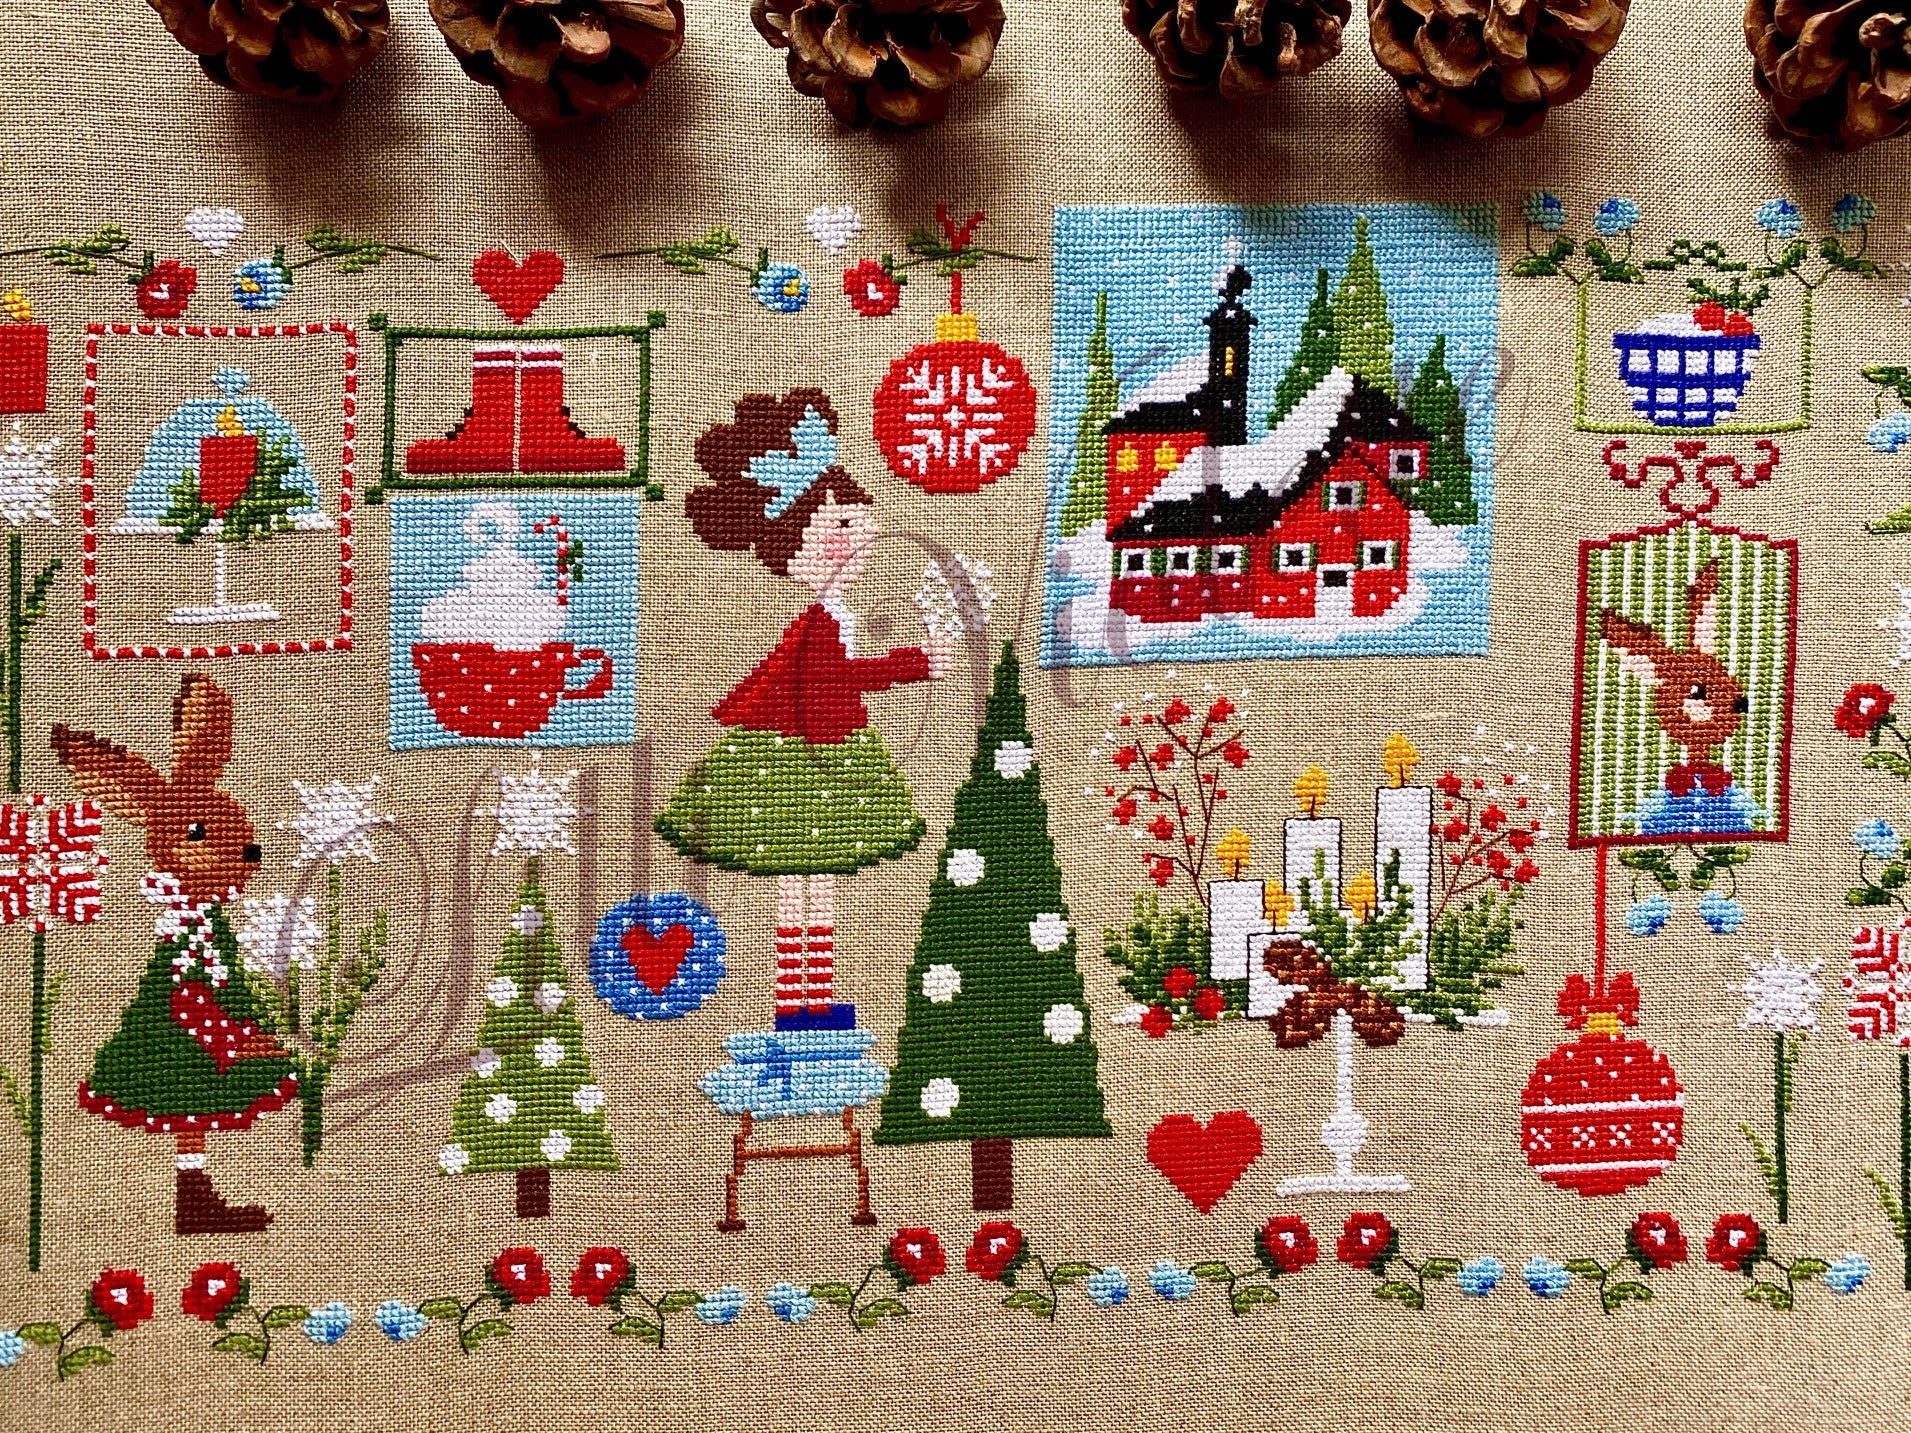 Natale è... (Christmas Is...) - Cross Stitch Pattern